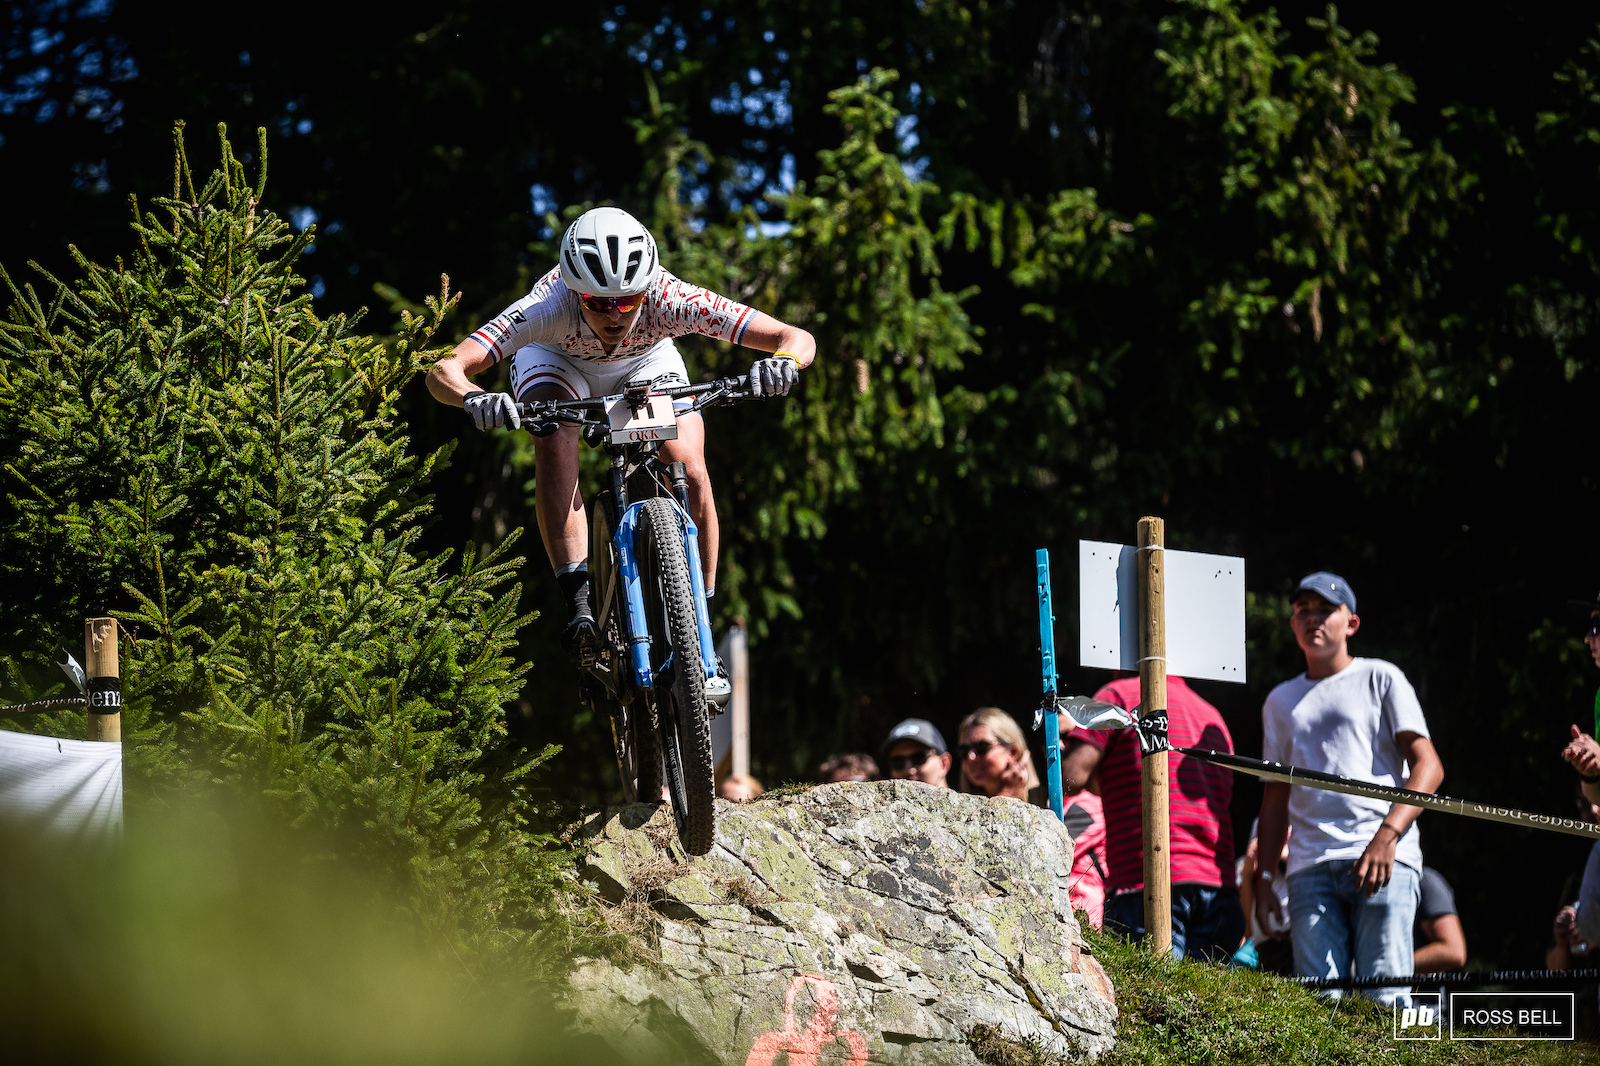 Anne Terpstra just missed out on the podium in 6th place.